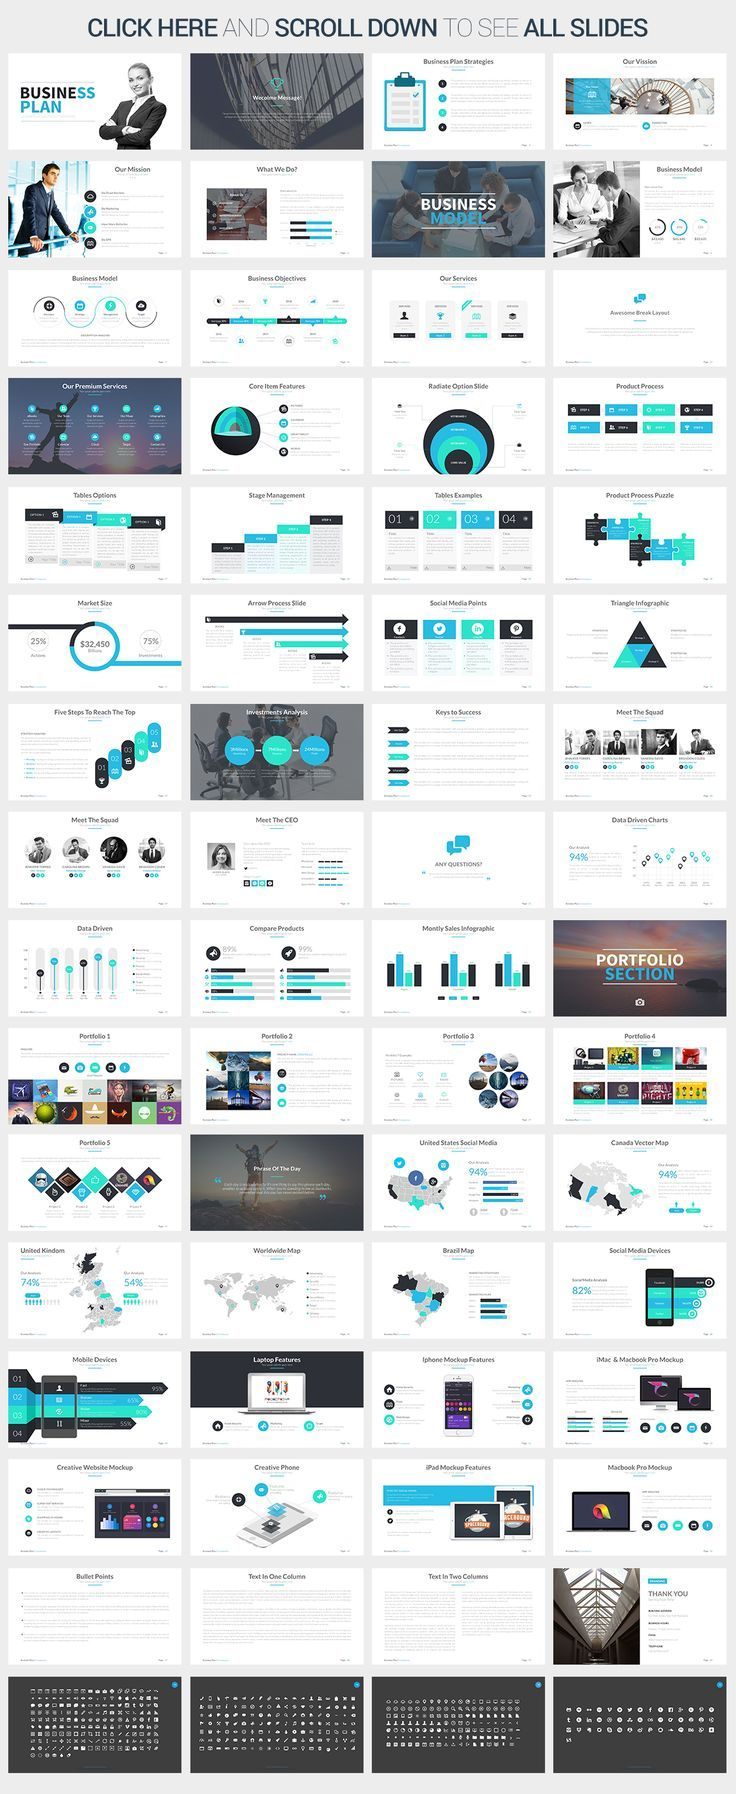 Best Business Plan Layout Ideas On Pinterest Simple Business - Business plan powerpoint template free